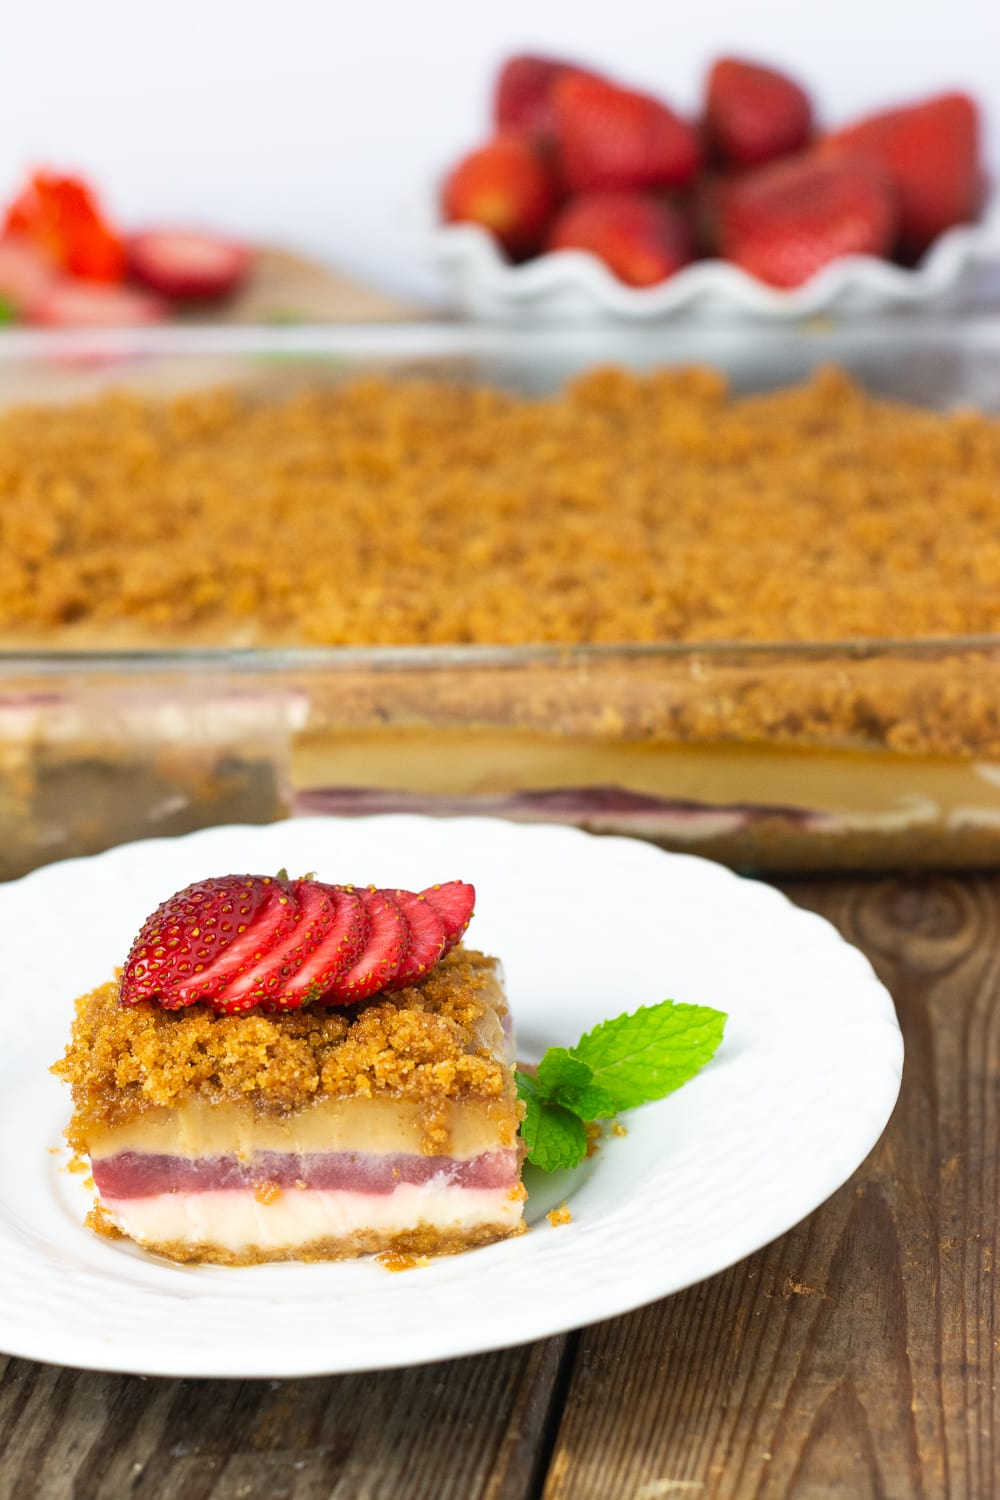 Vegan gluten-Free peanut butter lasagna garnished with strawberry slices on a white plate on a wooden board